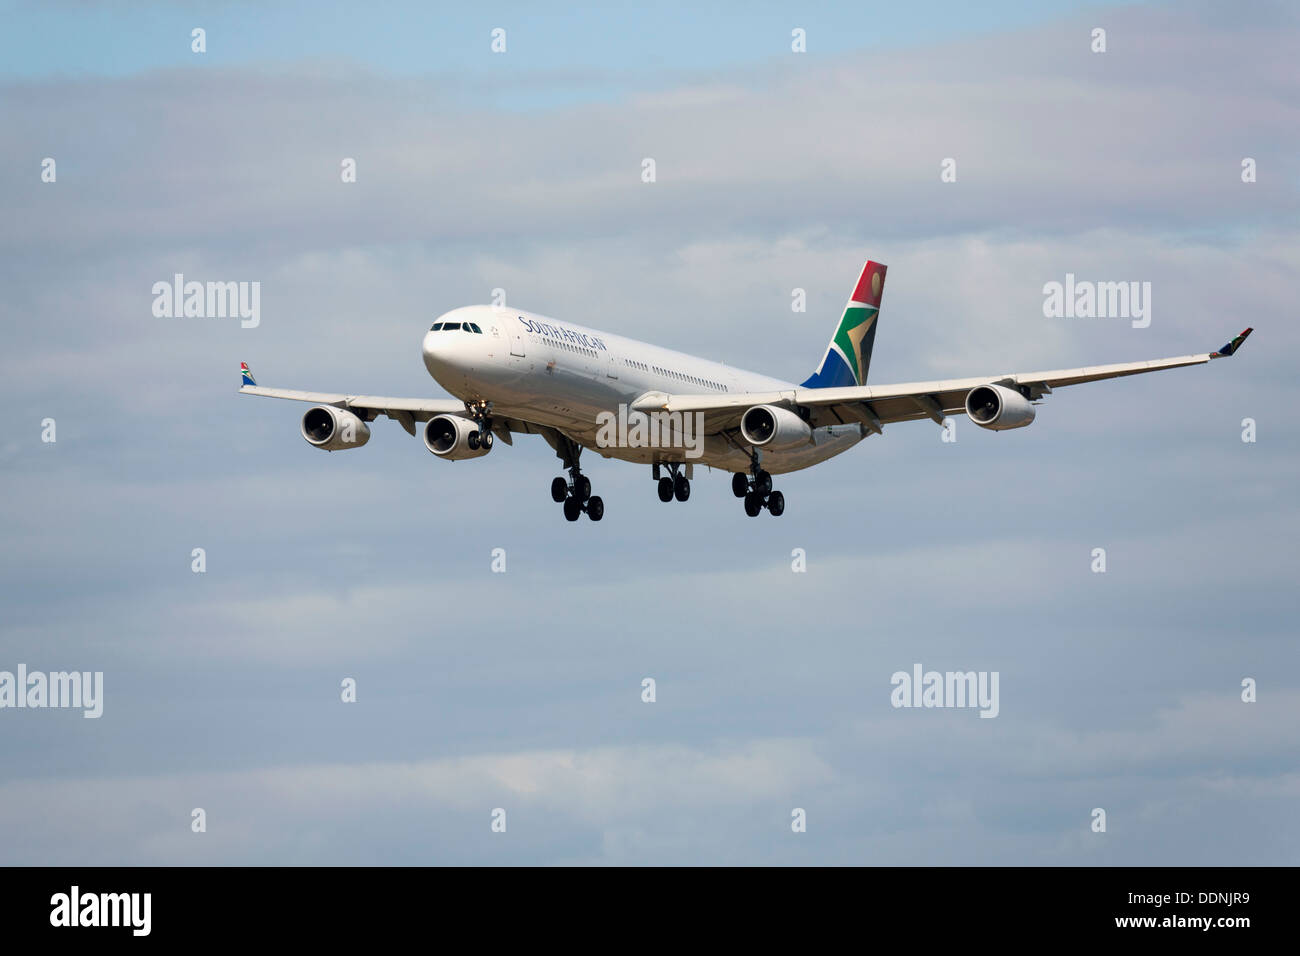 South African Airways Airbus A340-300 on final approach Stock Photo